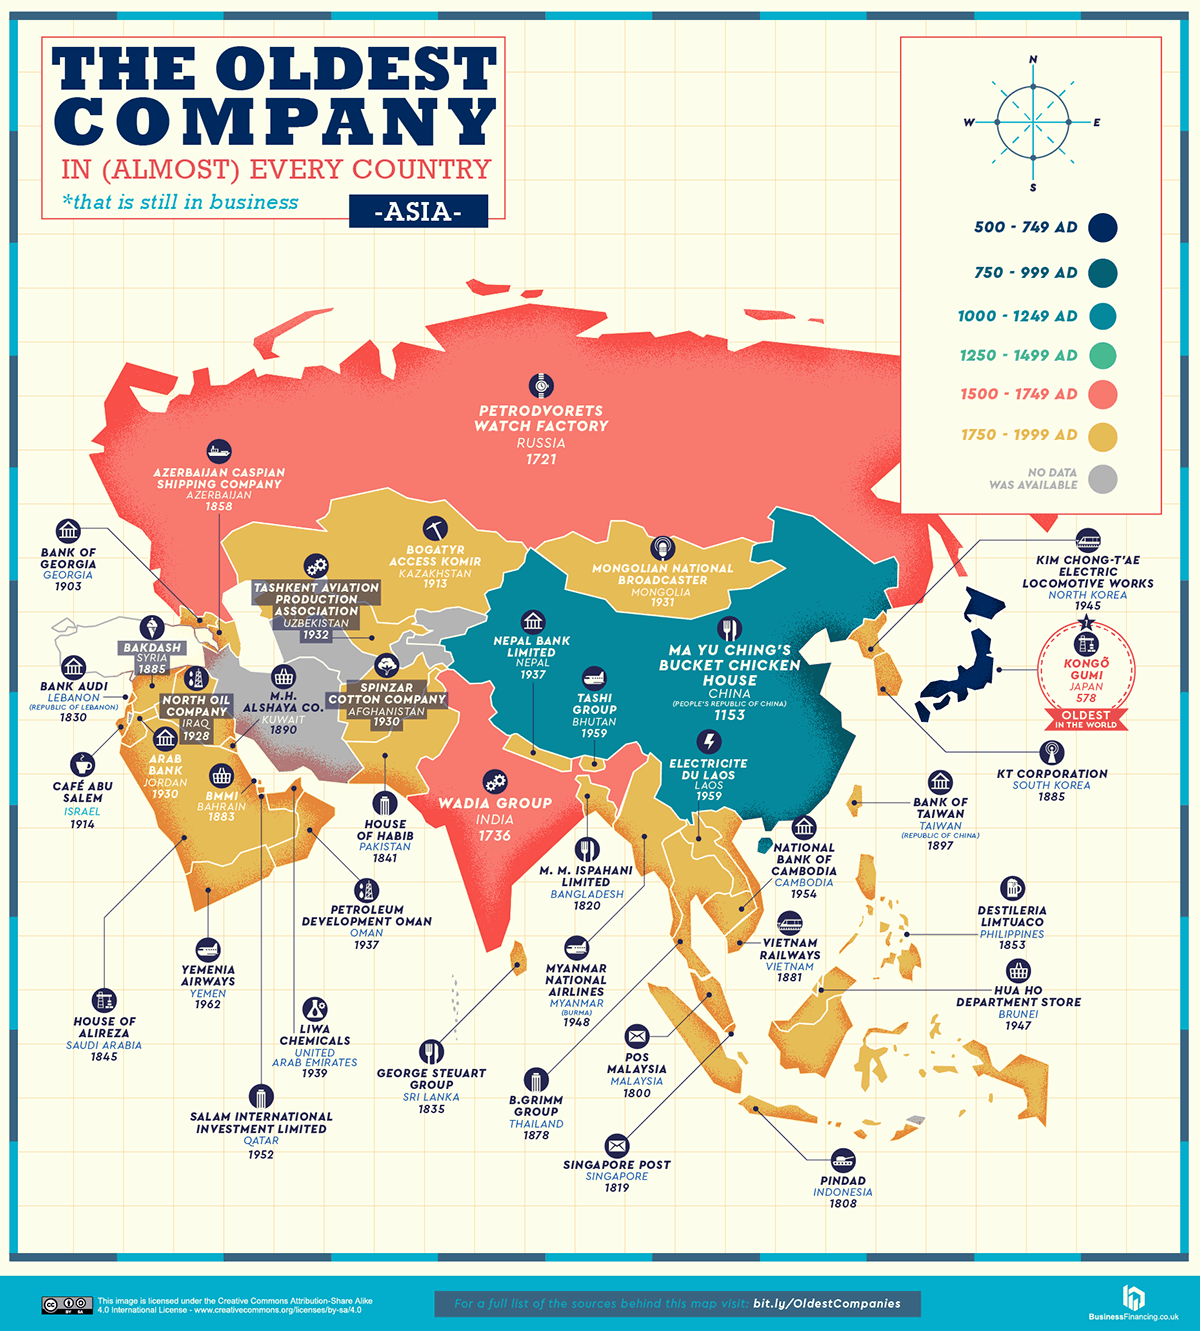 oldest company in every country map 4 A World Map of the Oldest Company in Every Country (Still in Business)